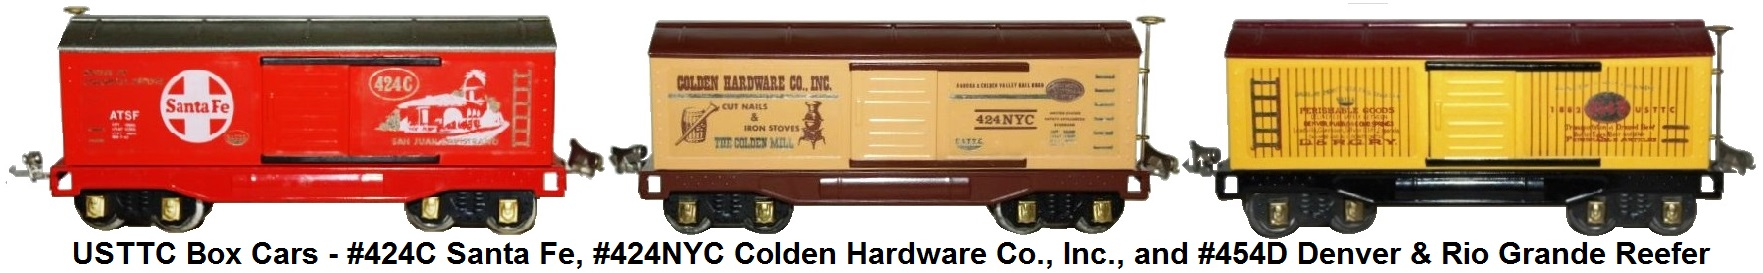 USTTC Box Cars - includes #424C Santa Fe, #424NYC Colden Hardware Co., Inc., and #454D Denver & Rio Grande Reefer